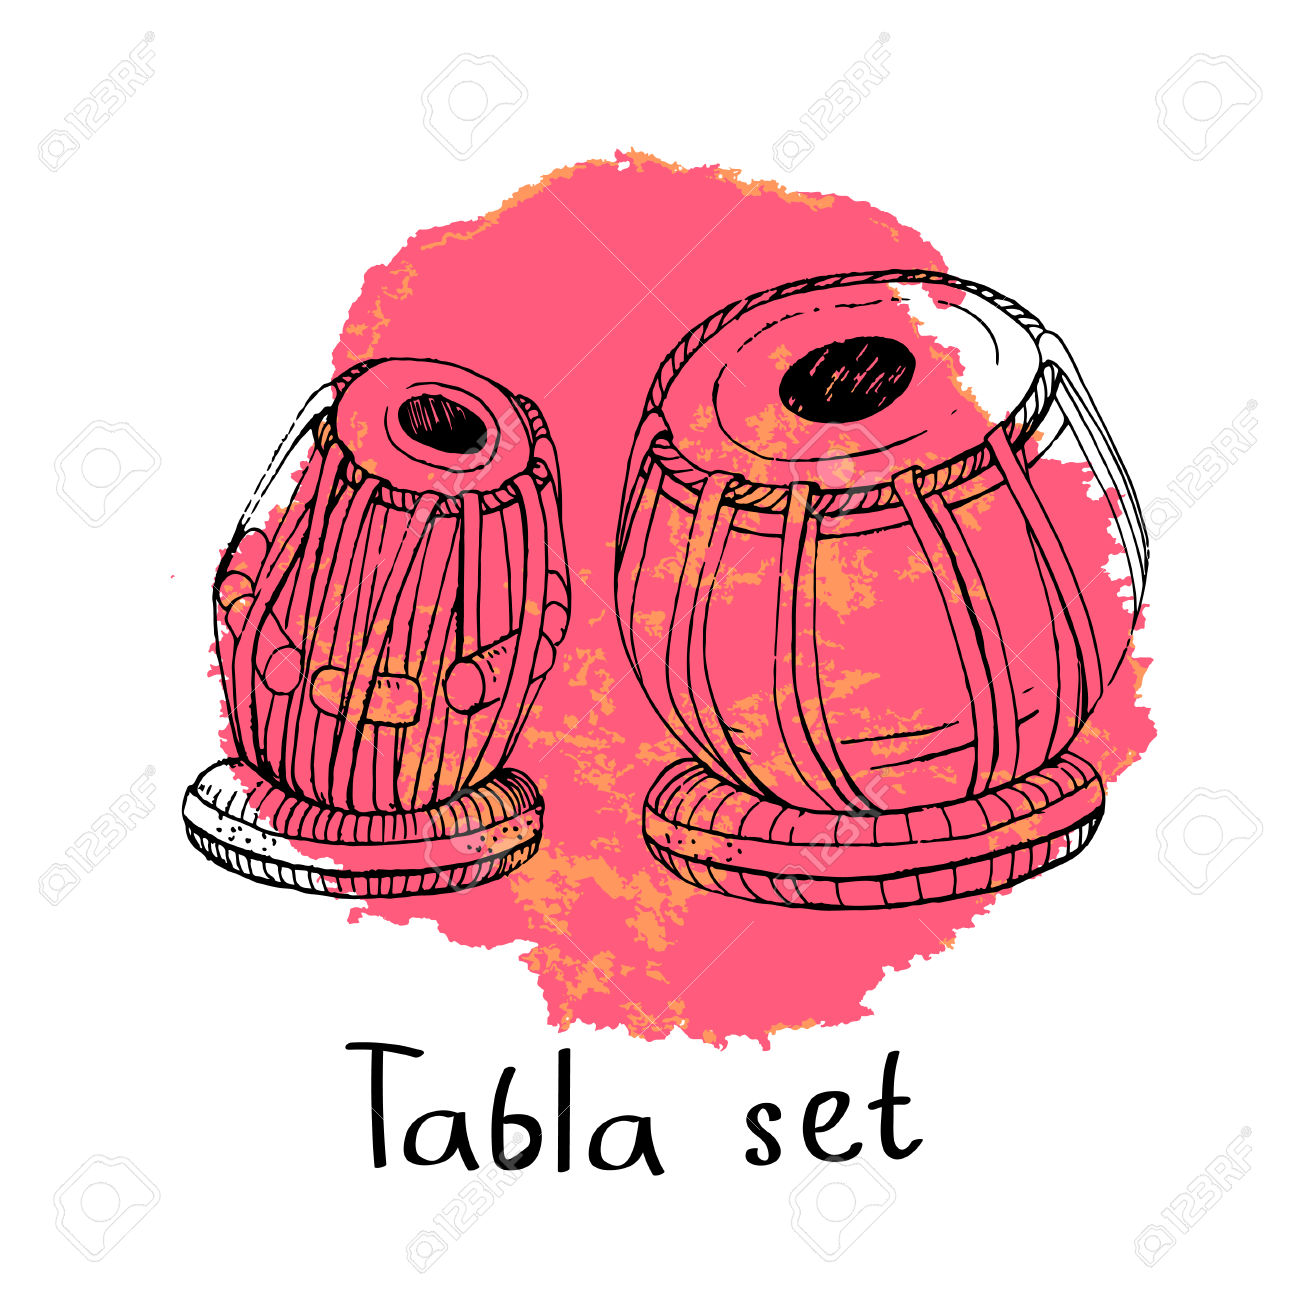 Hand Drawn Sketch Of A Traditional Indian Percussion Instrument.